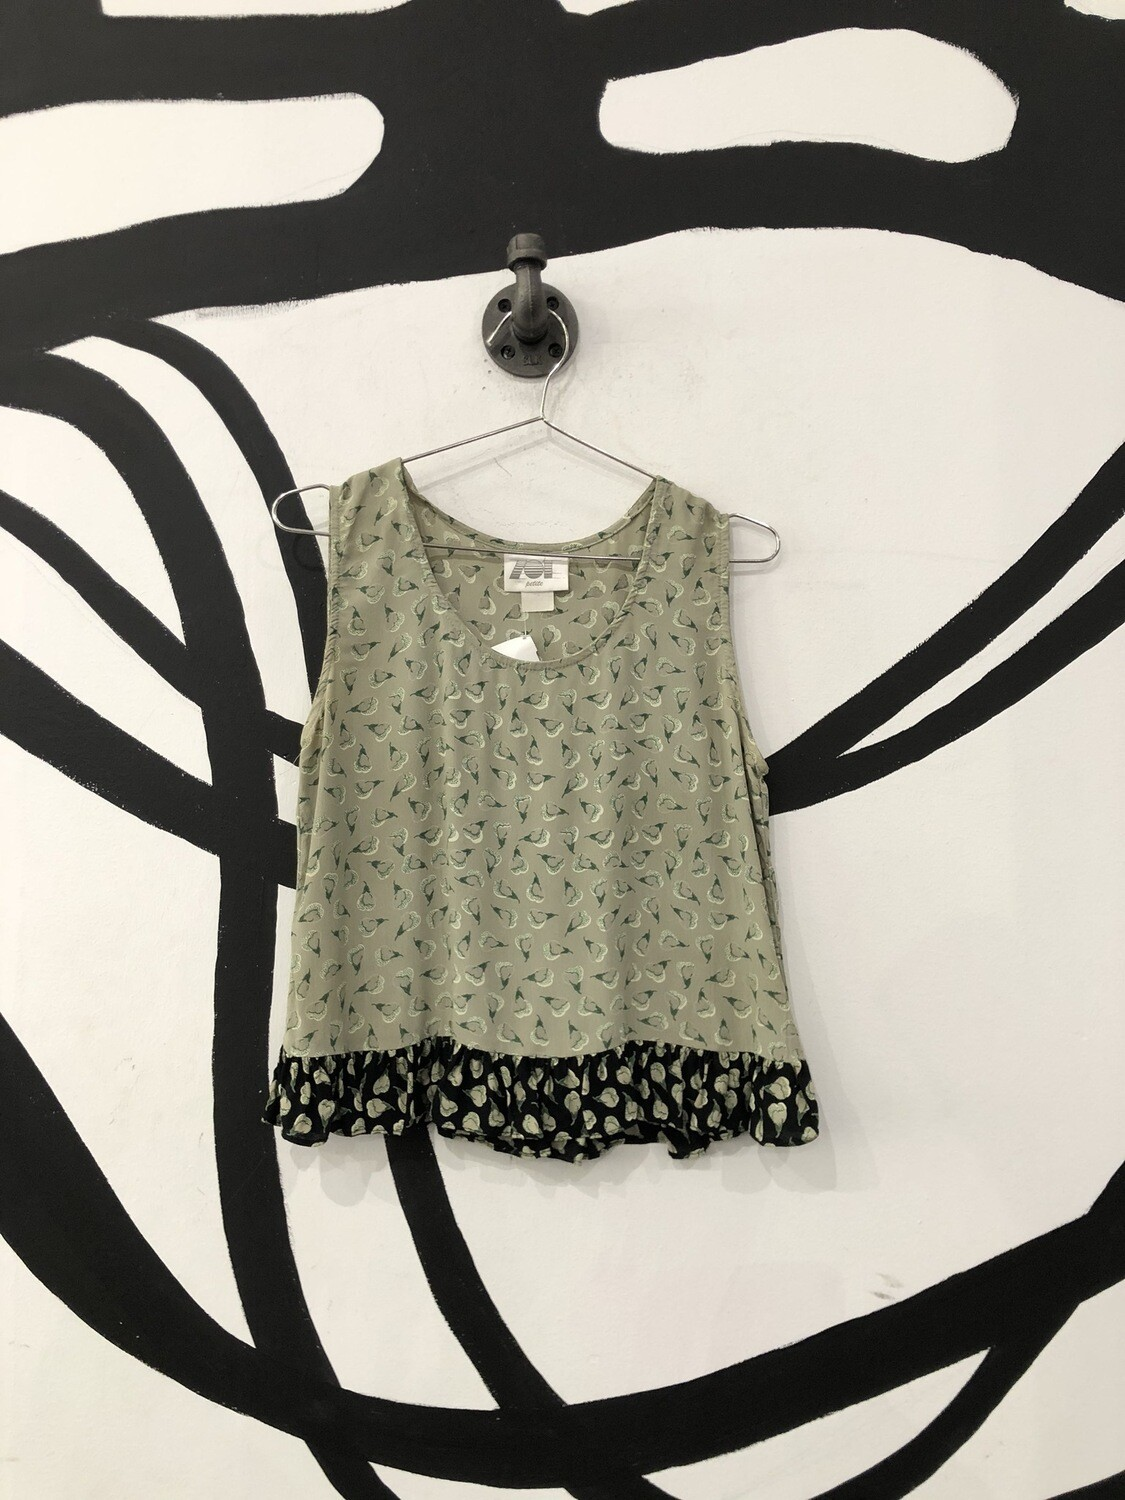 Pear Patterned Tank Top Size S